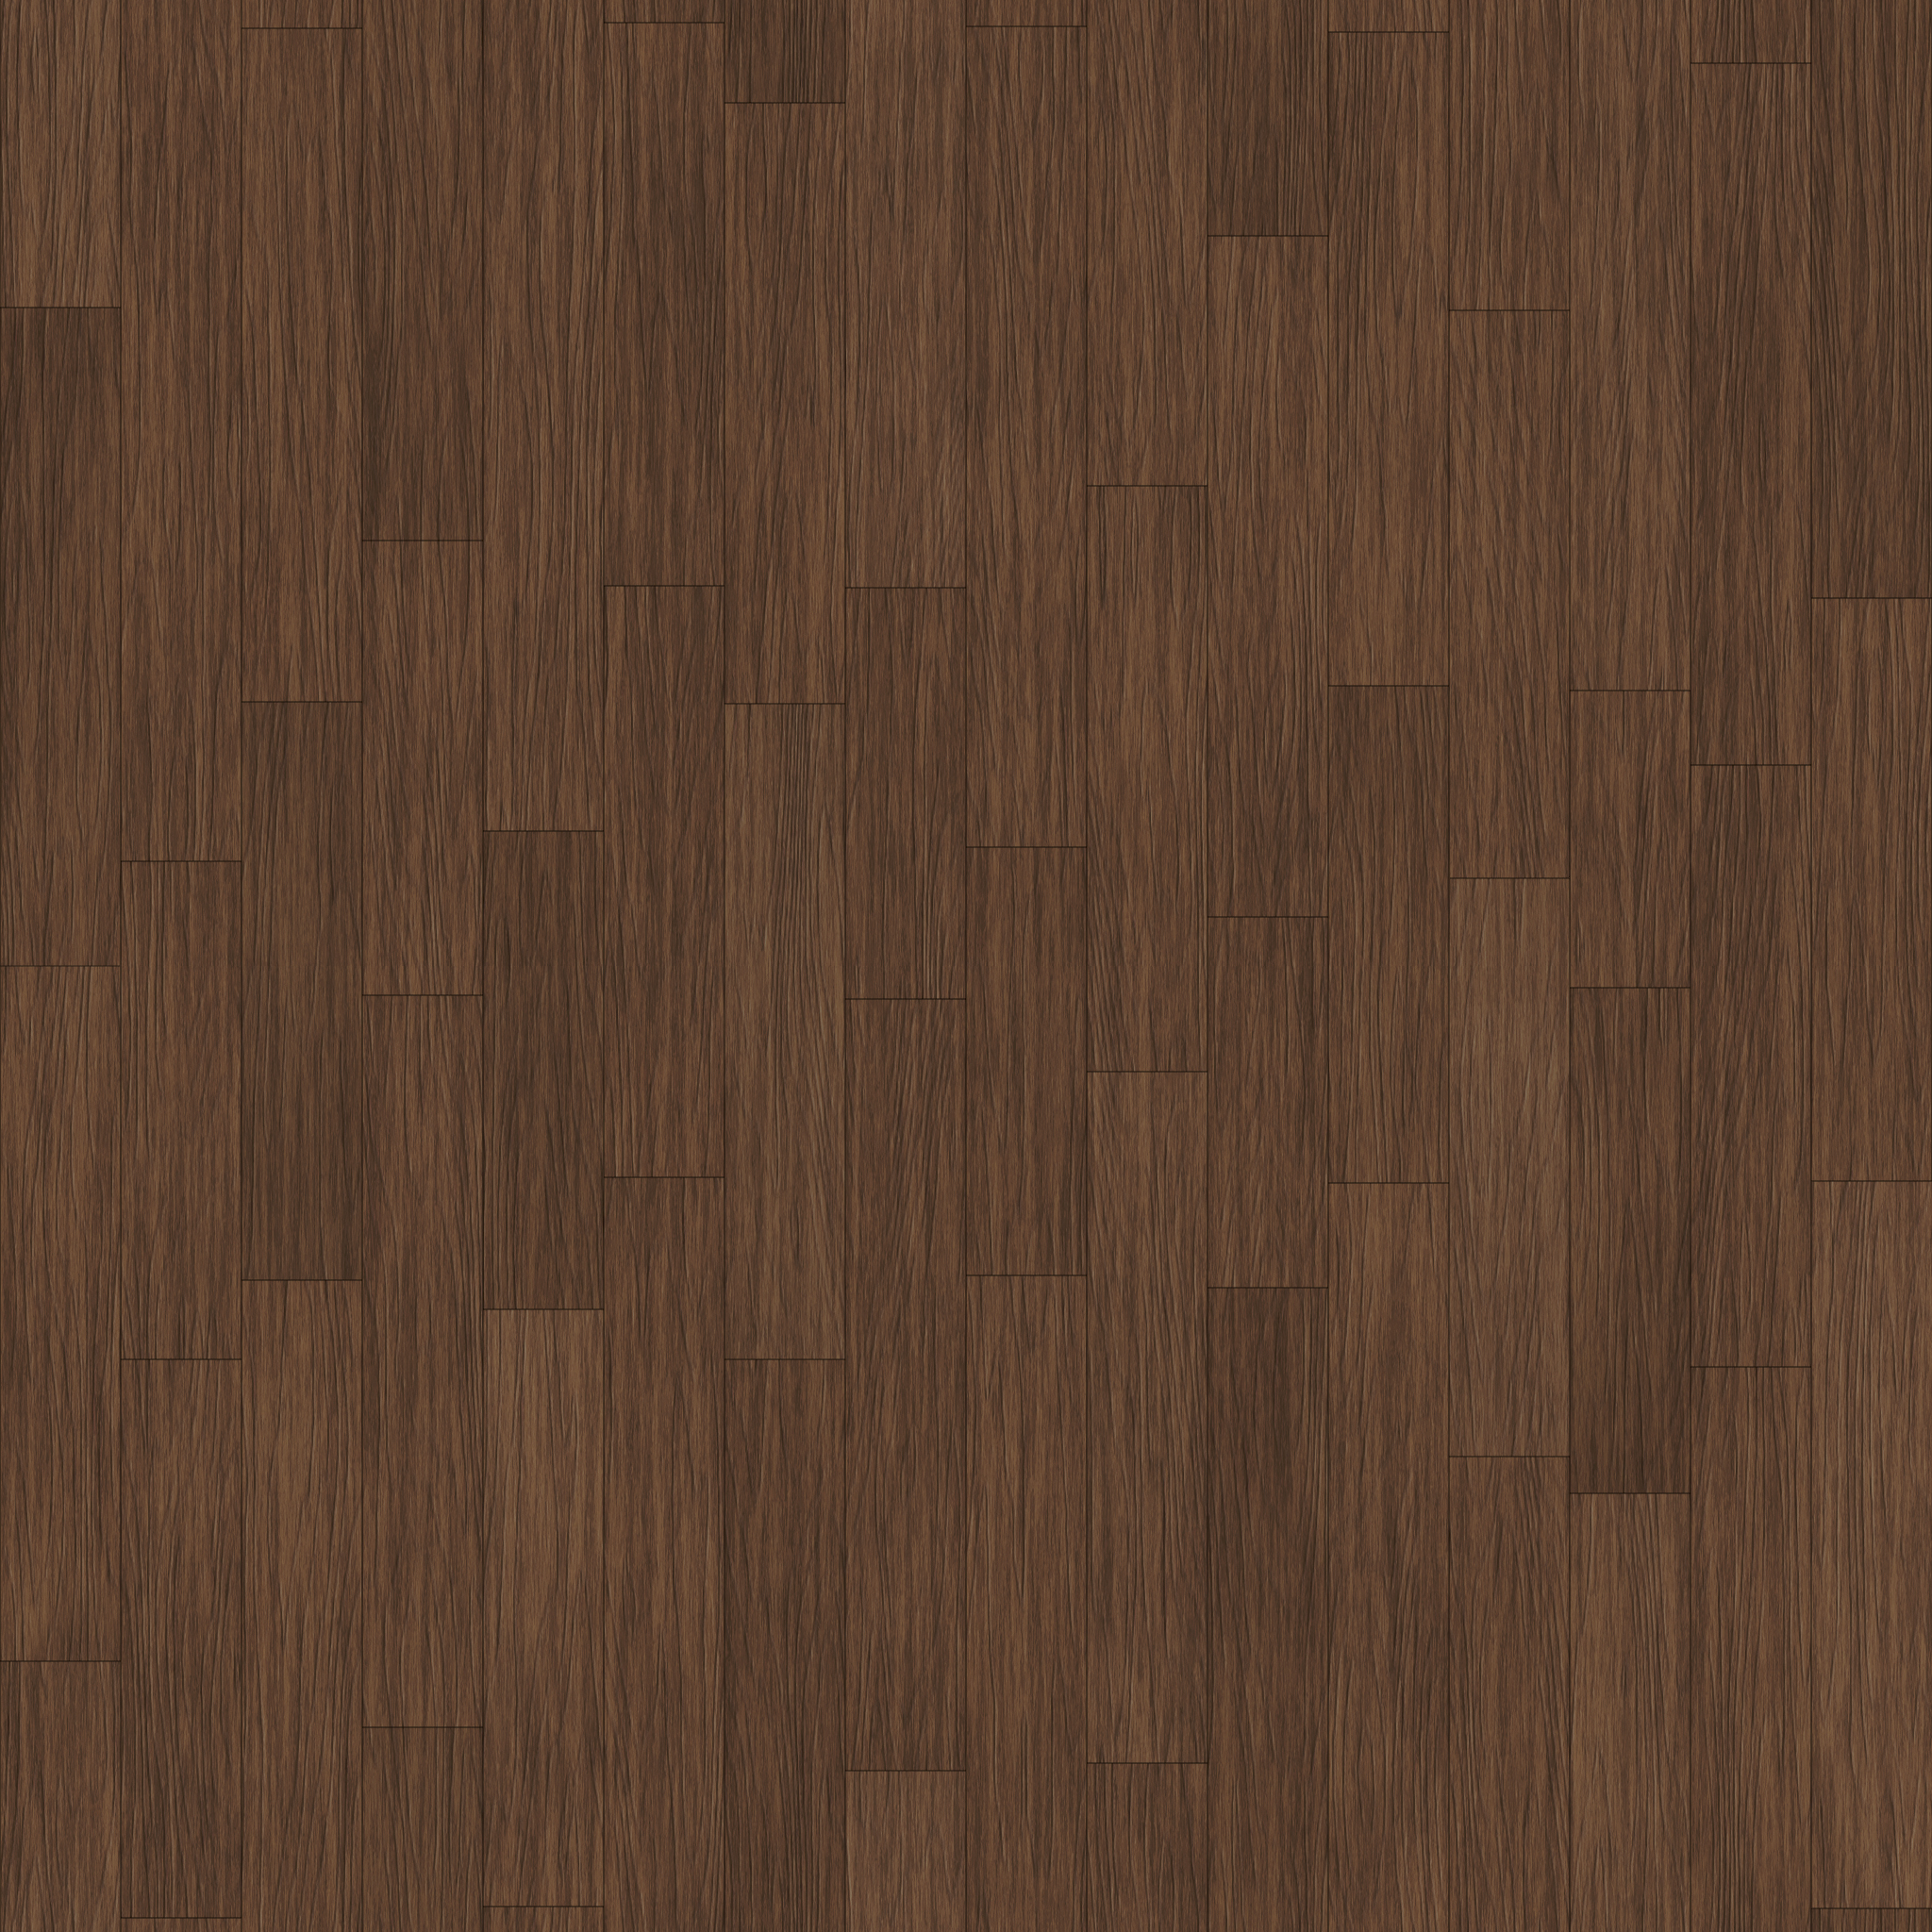 dark wooden floor texture tileable 2048x2048 by